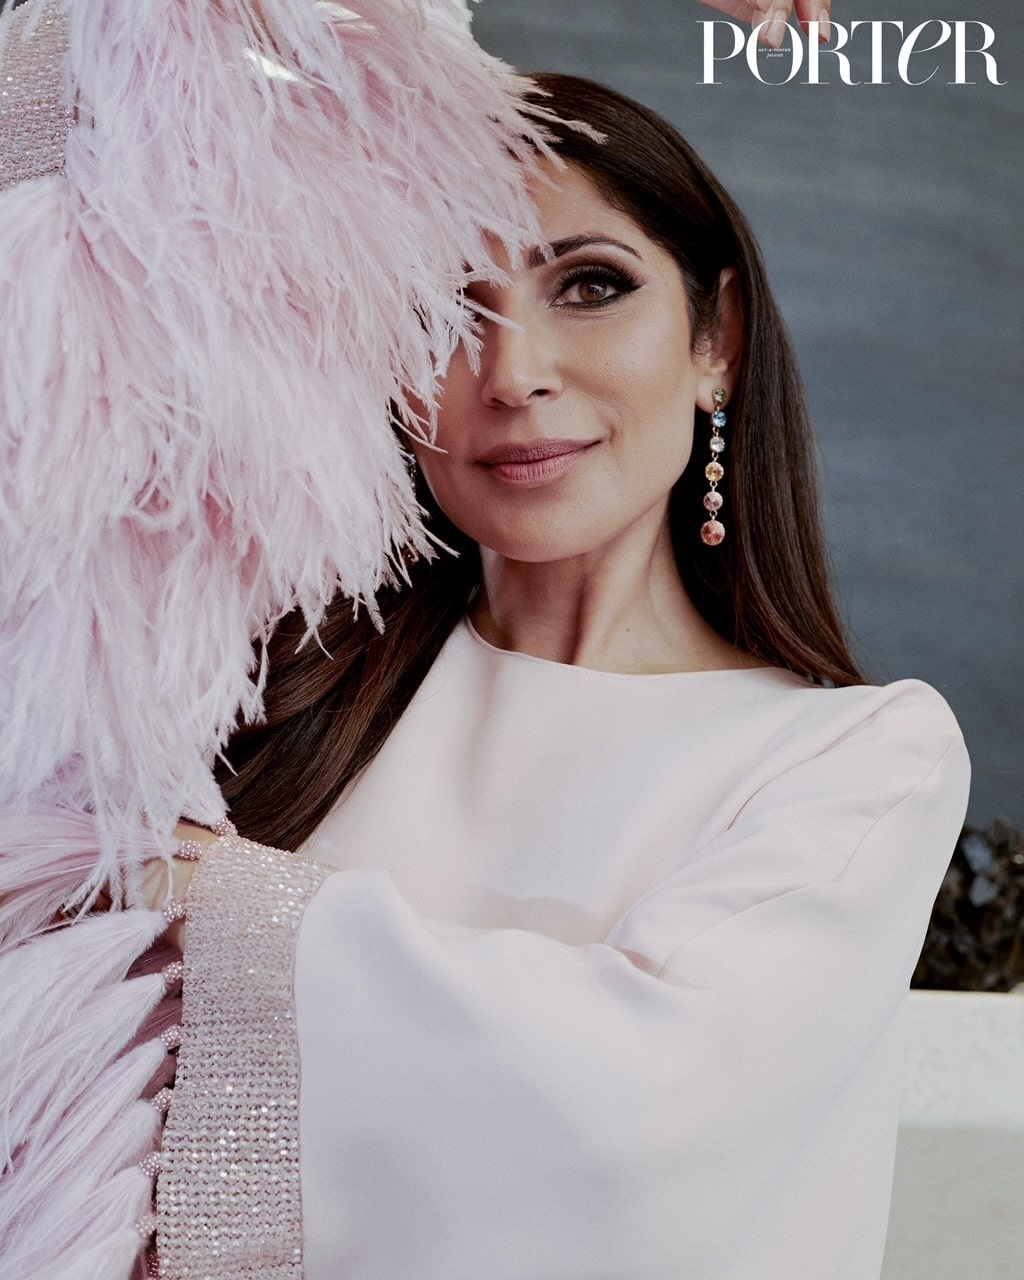 Sobia A. Shaikh is a massively influential figure in the world of fashion. Find out how she grew her career and became a worldwide sensation.